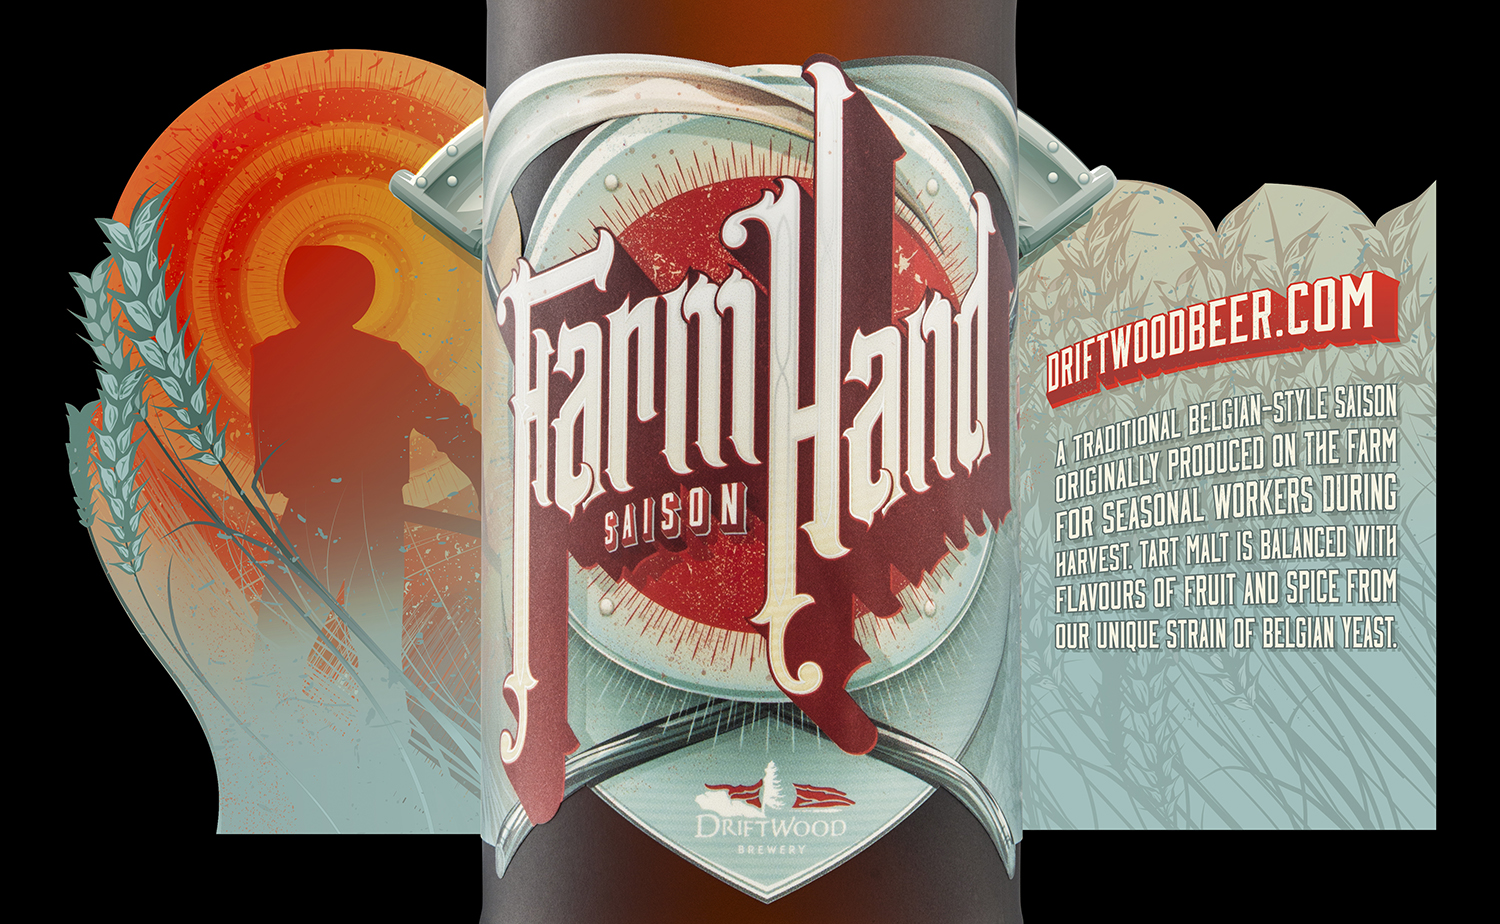 Packaging Design for Driftwood Brewery's Farmhand Saison